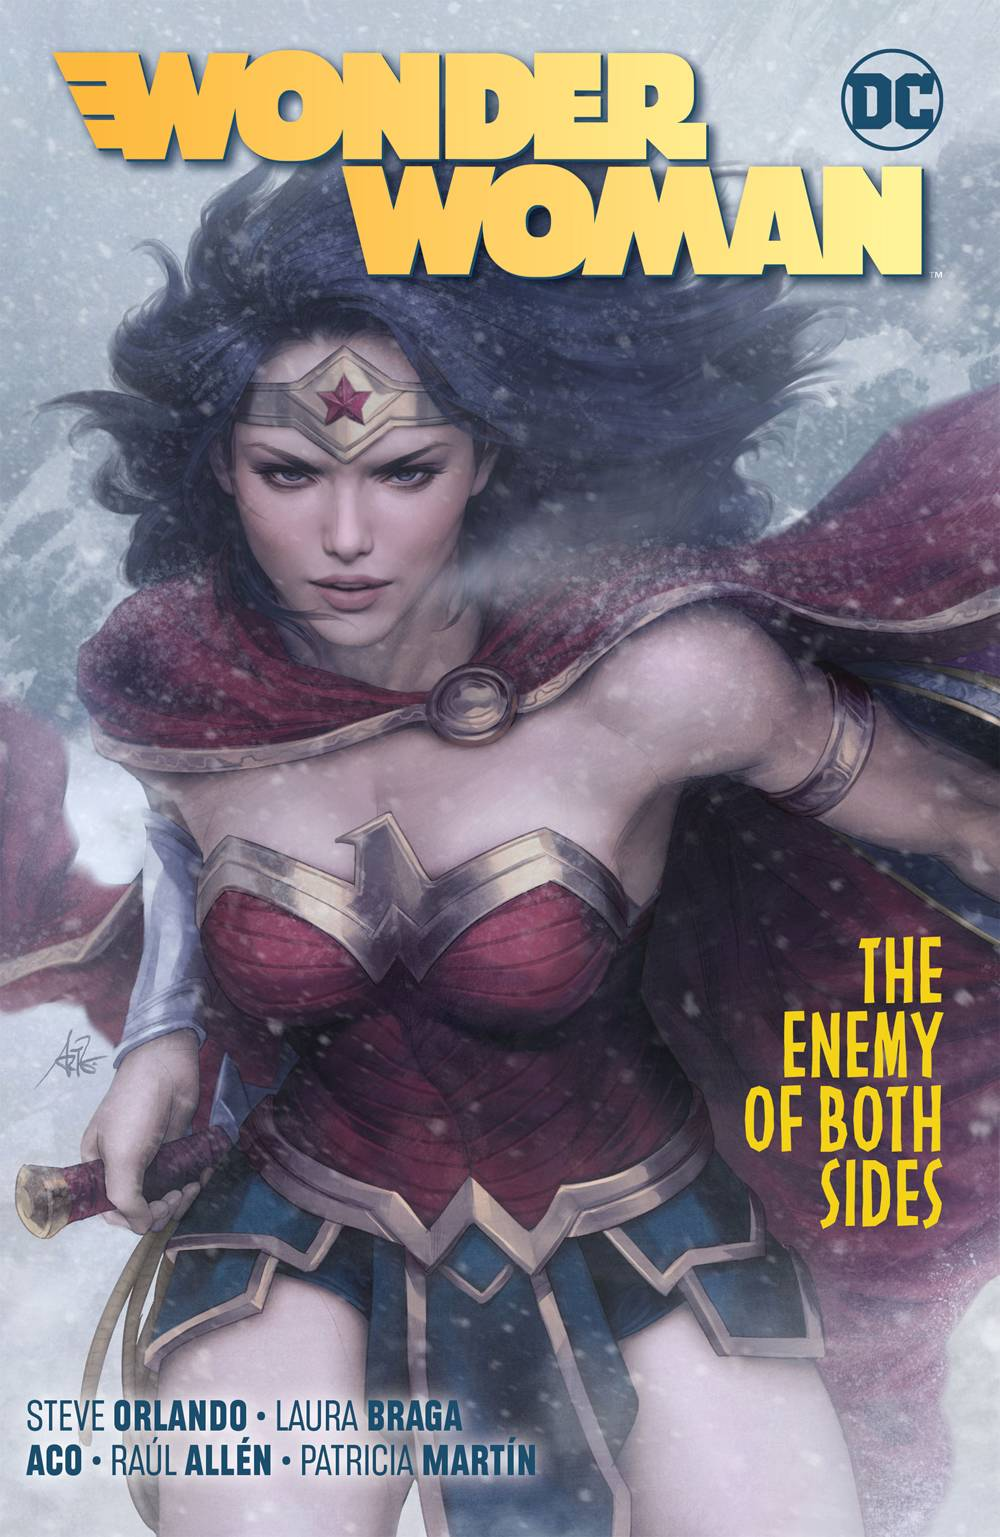 WONDER WOMAN TP VOL 09 THE ENEMY OF BOTH SIDES